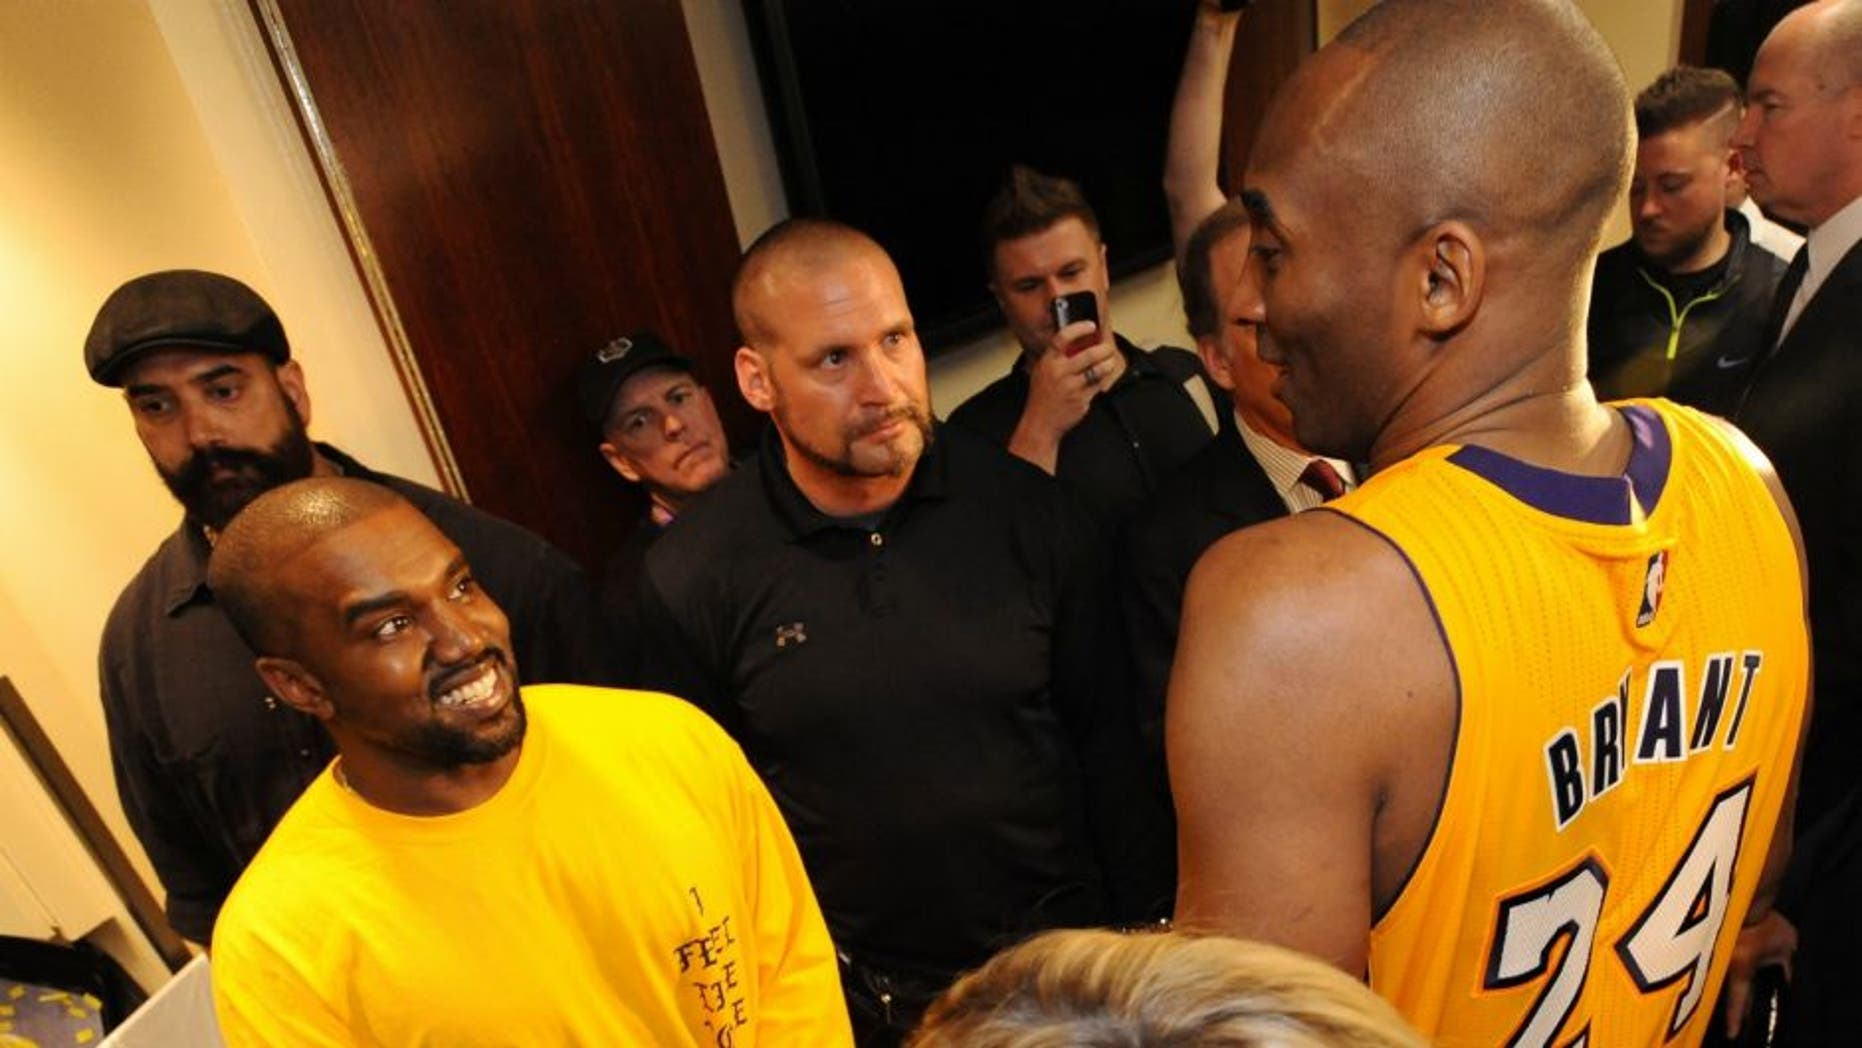 LOS ANGELES, CA - APRIL 13: Rapper, Kanye West talks to Kobe Bryant #24 of the Los Angeles Lakers after the game on April 13, 2016 at Staples Center in Los Angeles, California. NOTE TO USER: User expressly acknowledges and agrees that, by downloading and/or using this Photograph, user is consenting to the terms and conditions of the Getty Images License Agreement. Mandatory Copyright Notice: Copyright 2016 NBAE (Photo by Andrew D. Bernstein/NBAE via Getty Images)